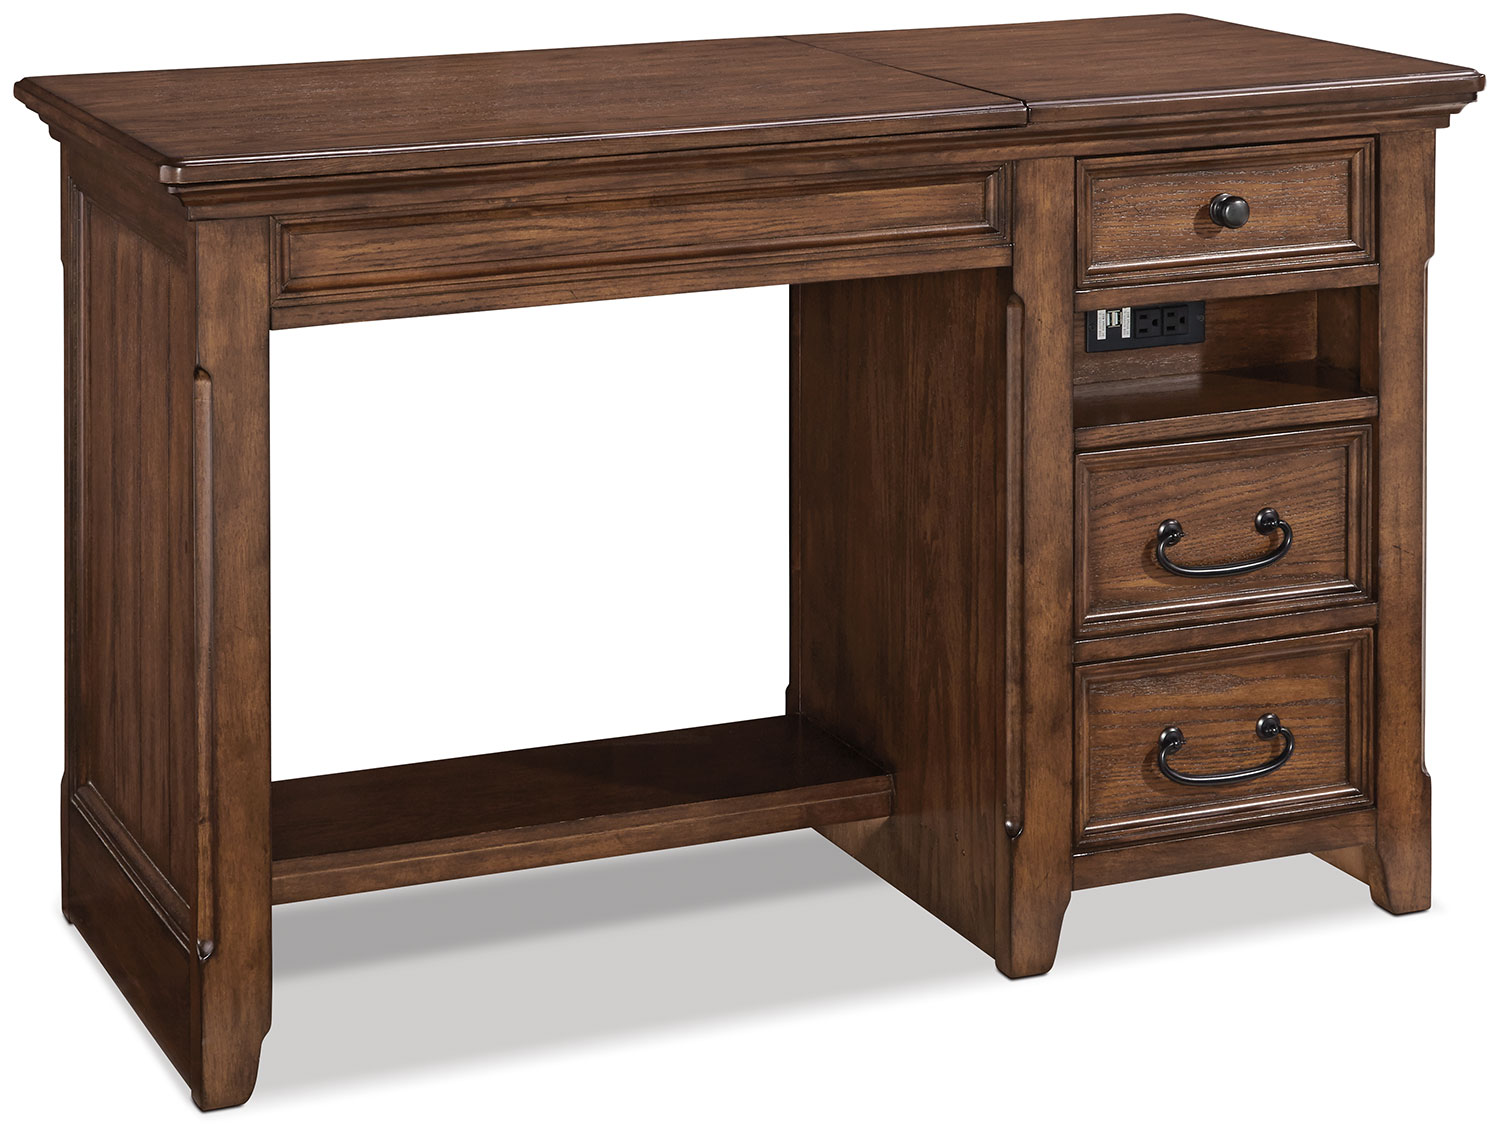 Woodboro Lift-Top Desk